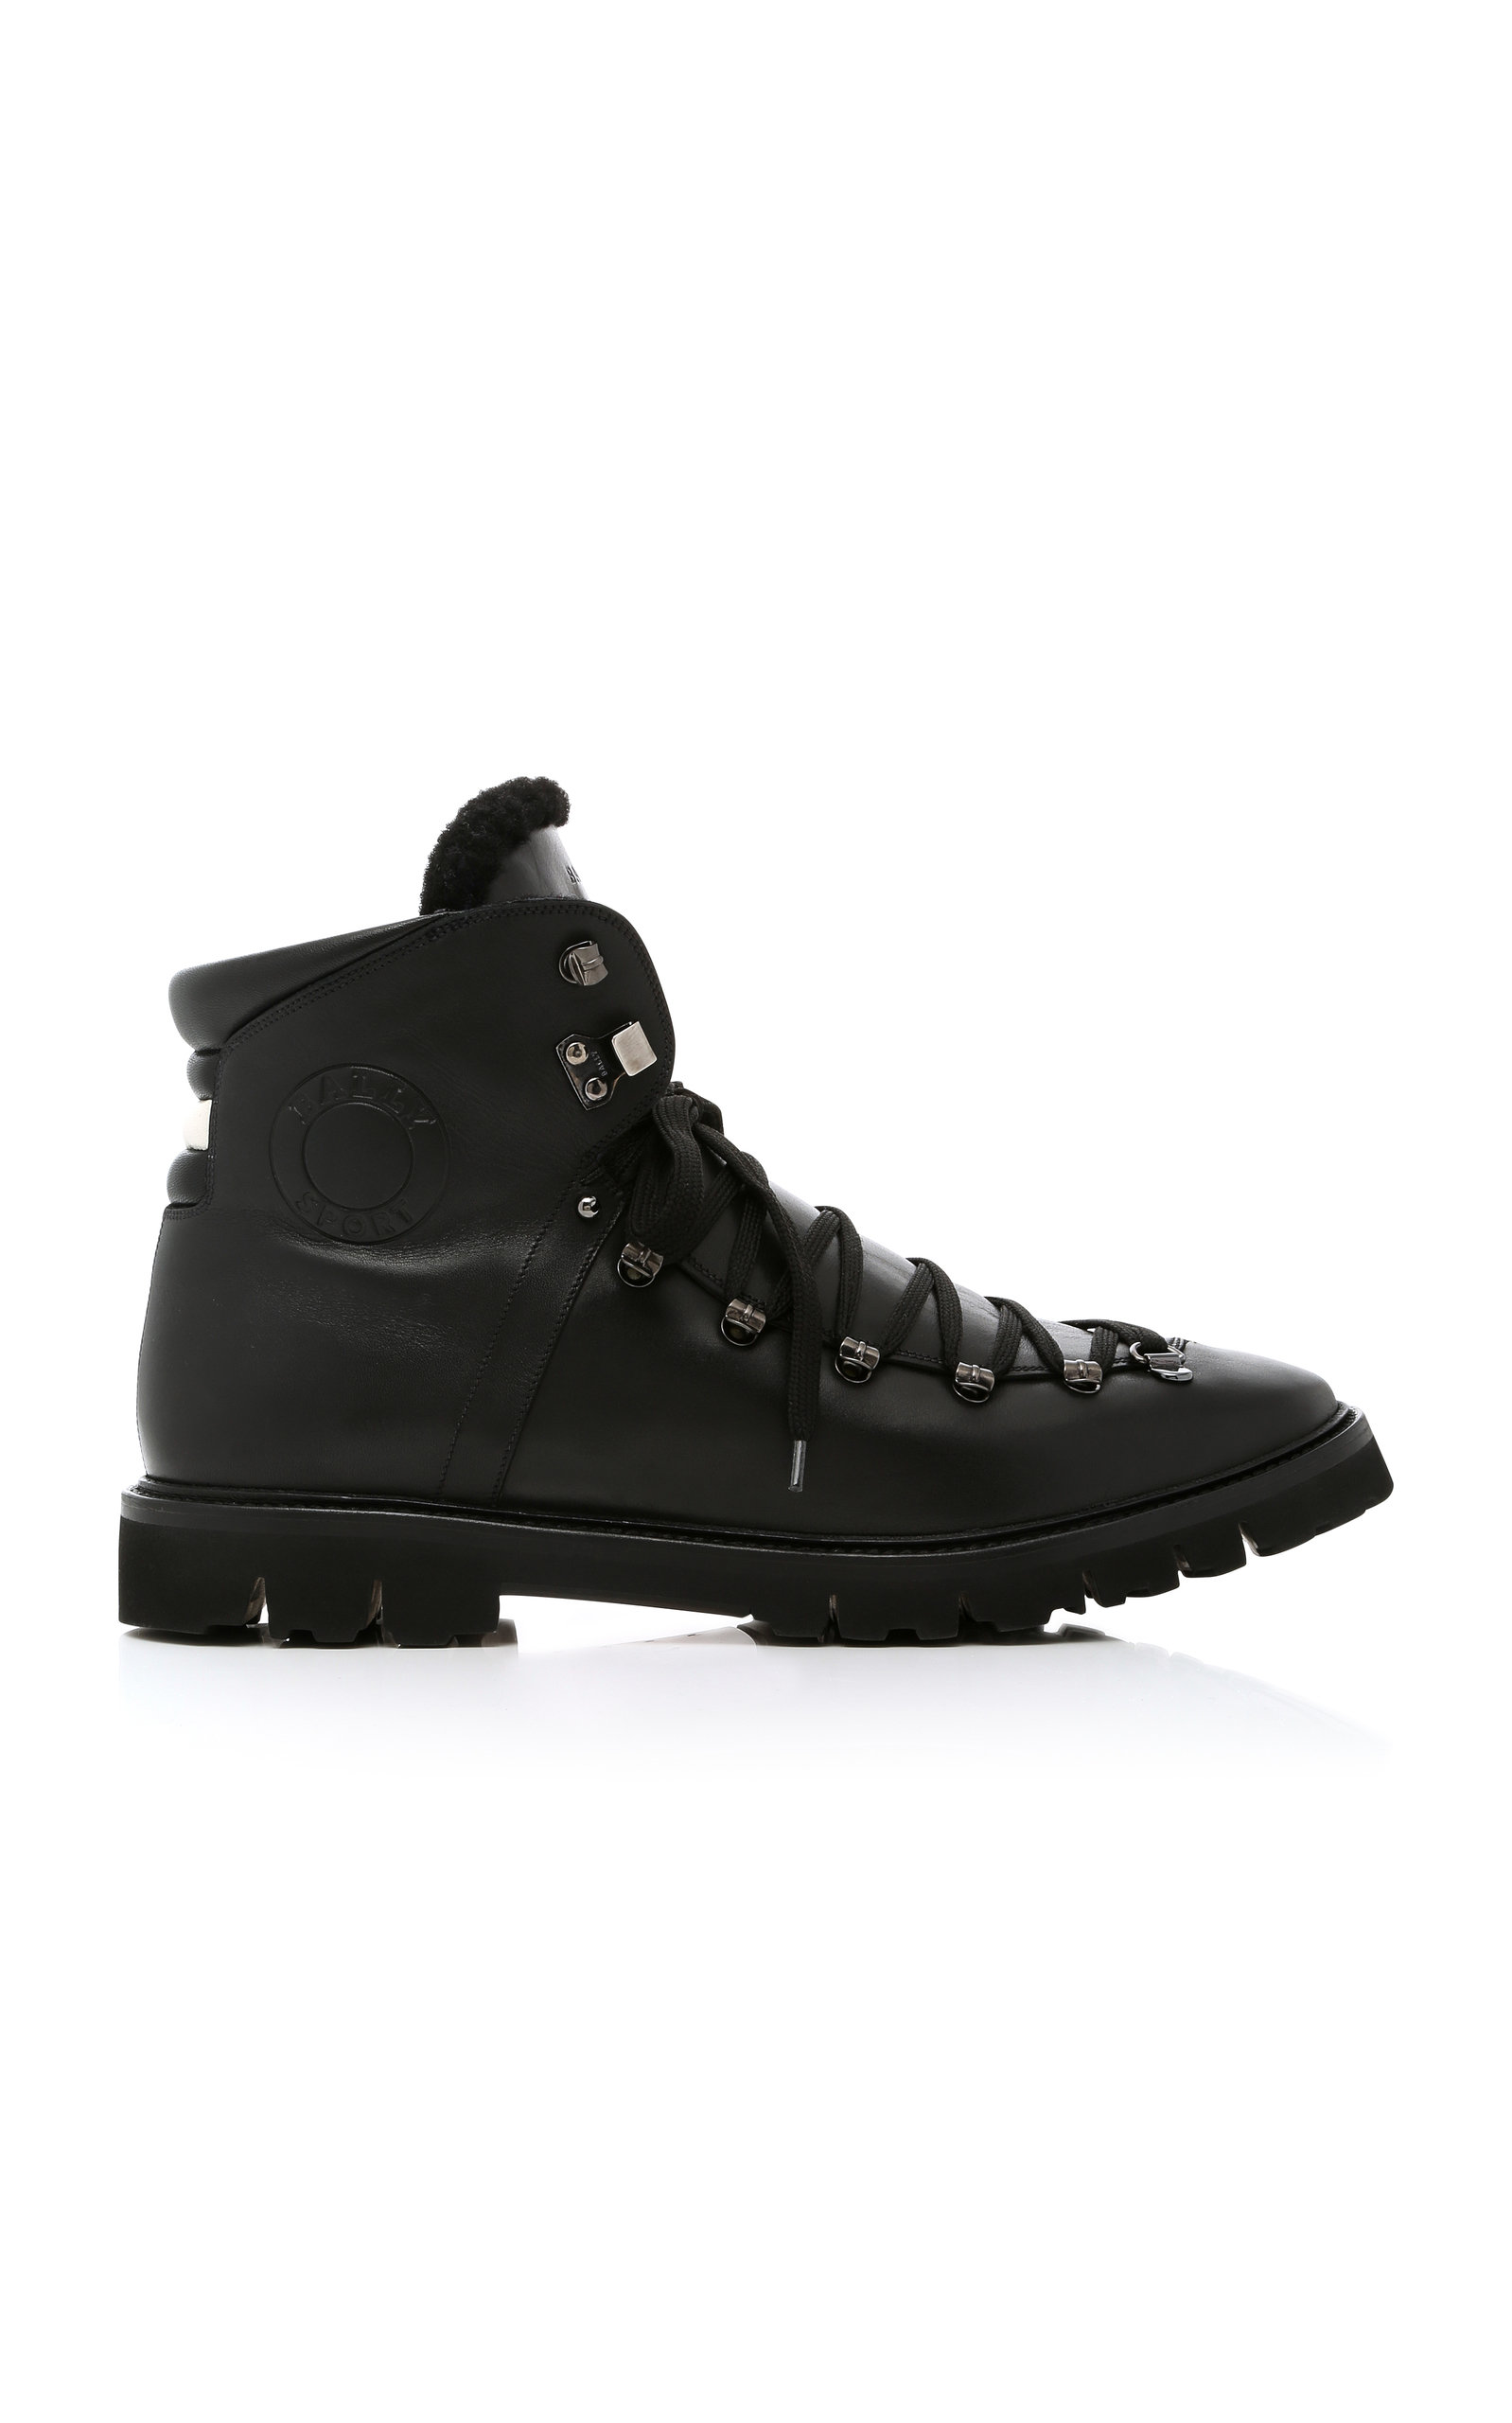 0622a7e6157 Chack Fur-Trimmed Hiking Boots in Black